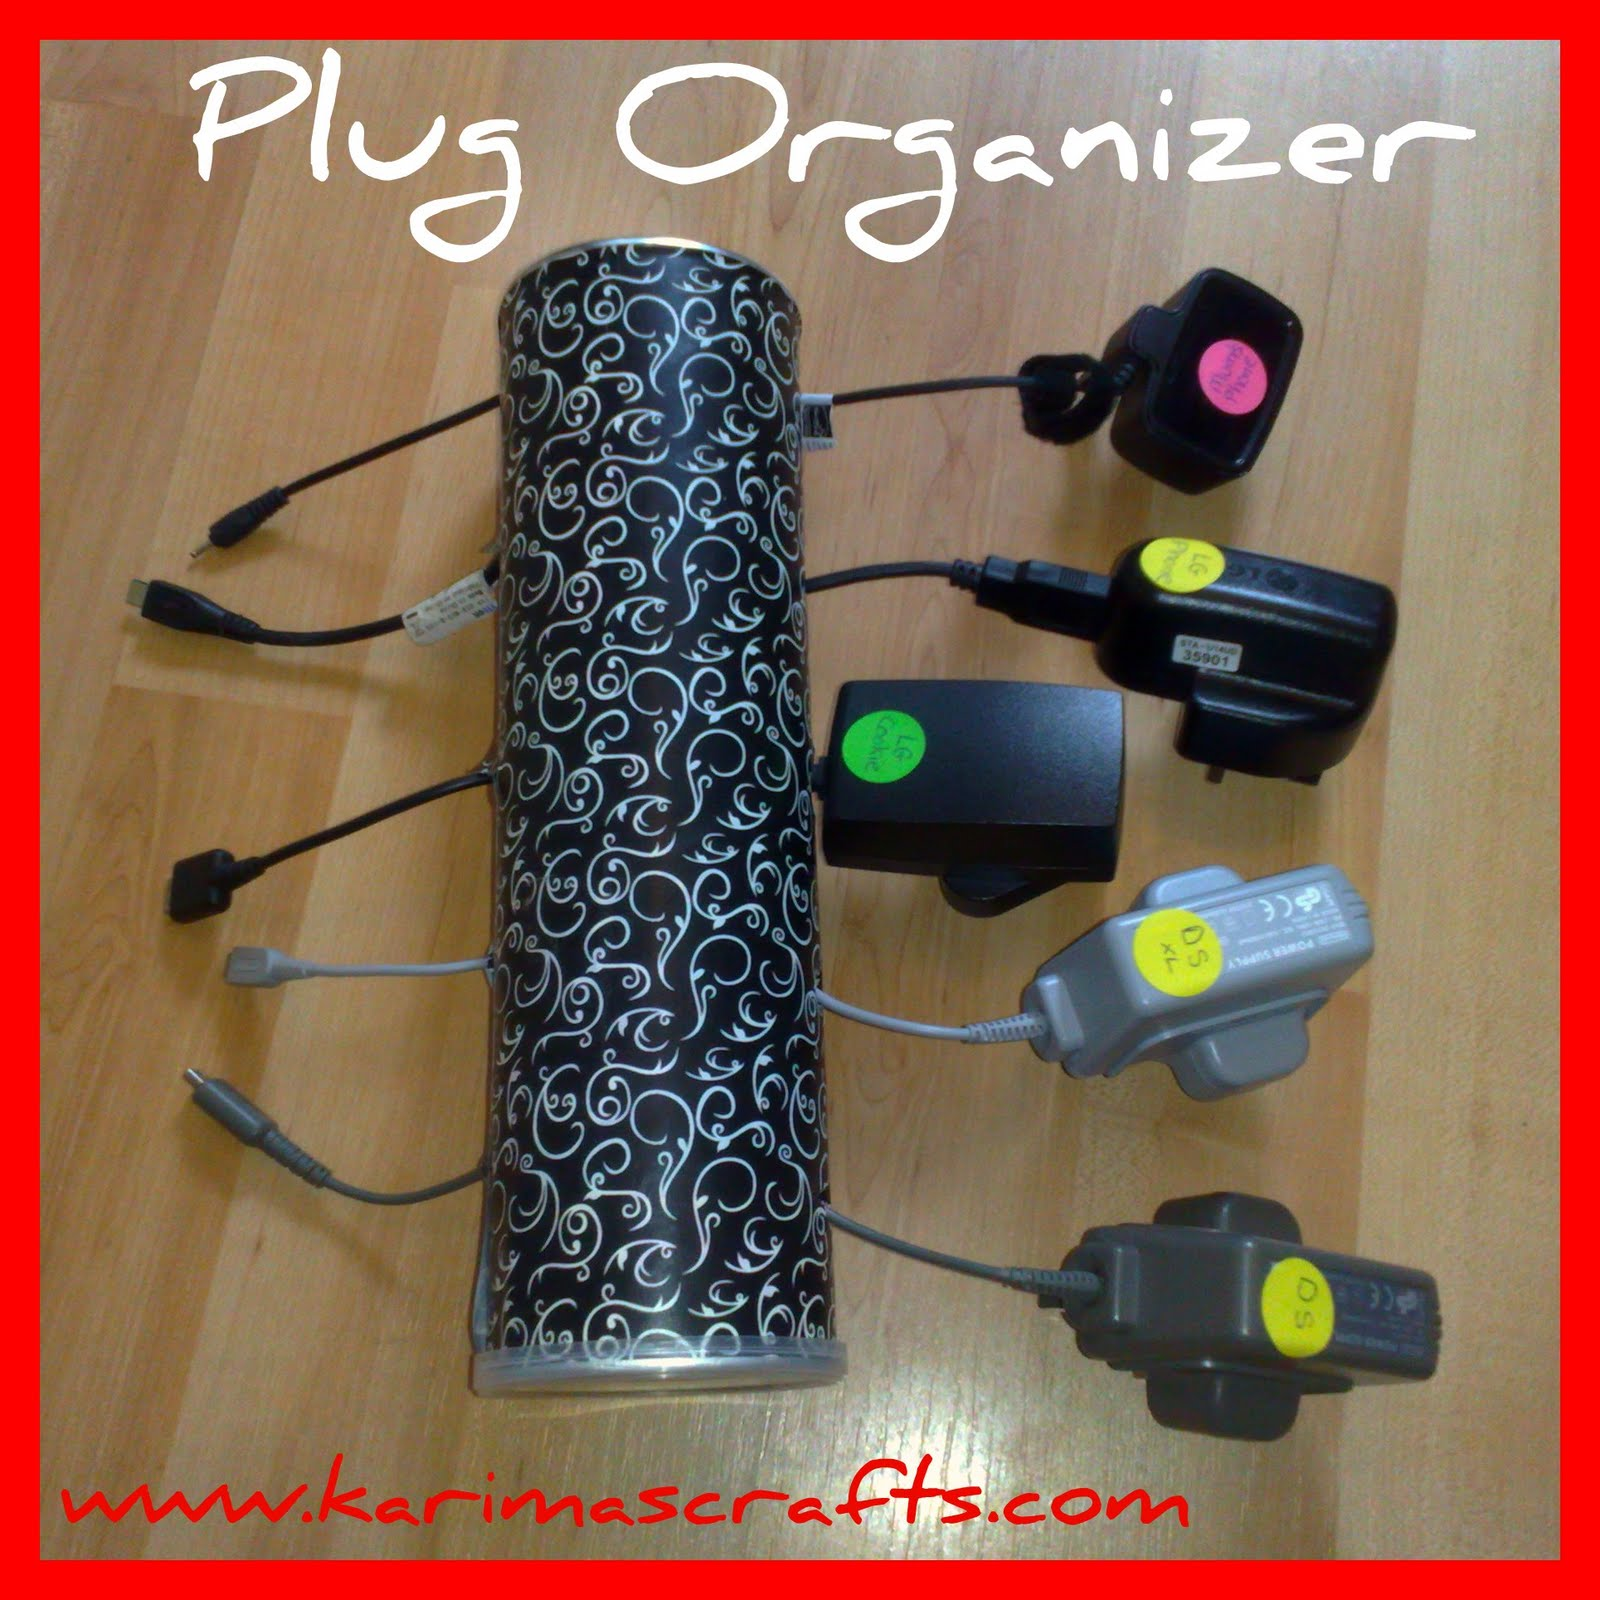 This is a great upcycling craft too, less for the rubbish bin! Below is  another close-up photo of my plug organizer.